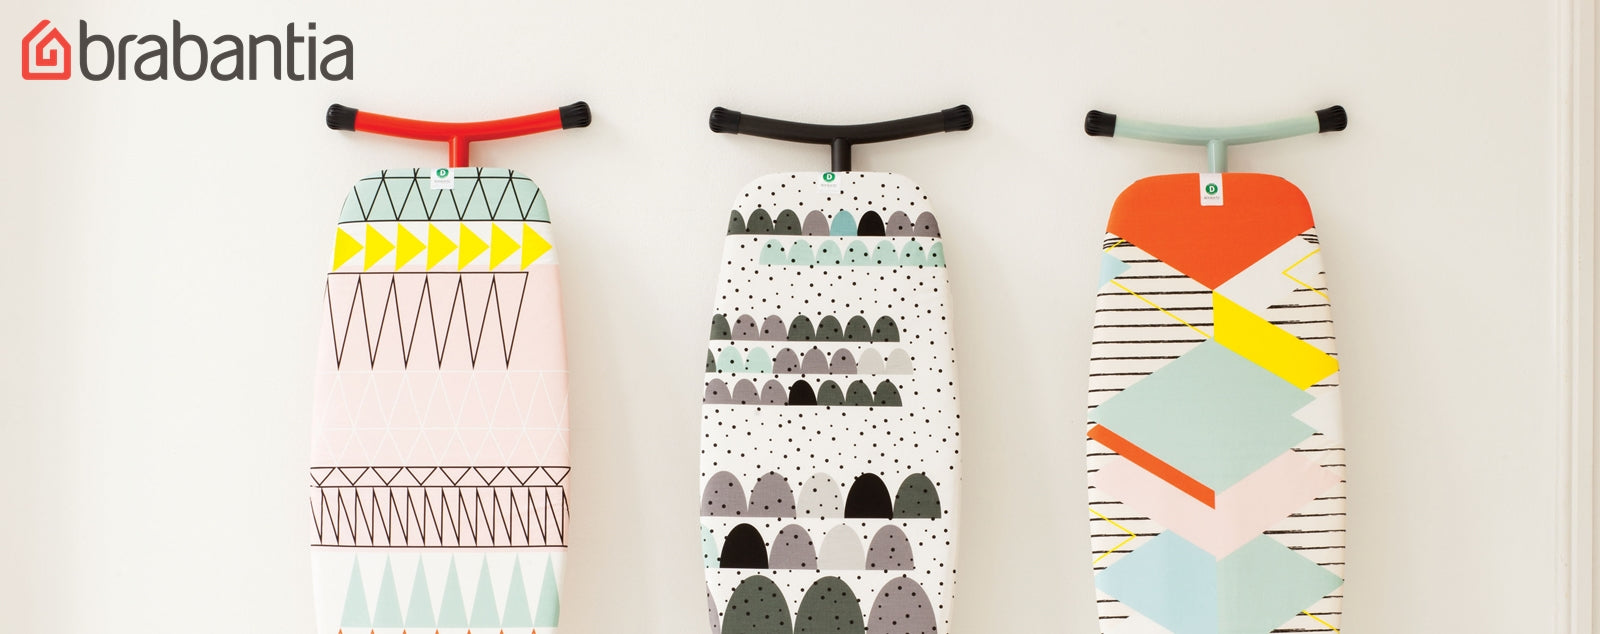 brabantia ironing board covers laundry sale sg